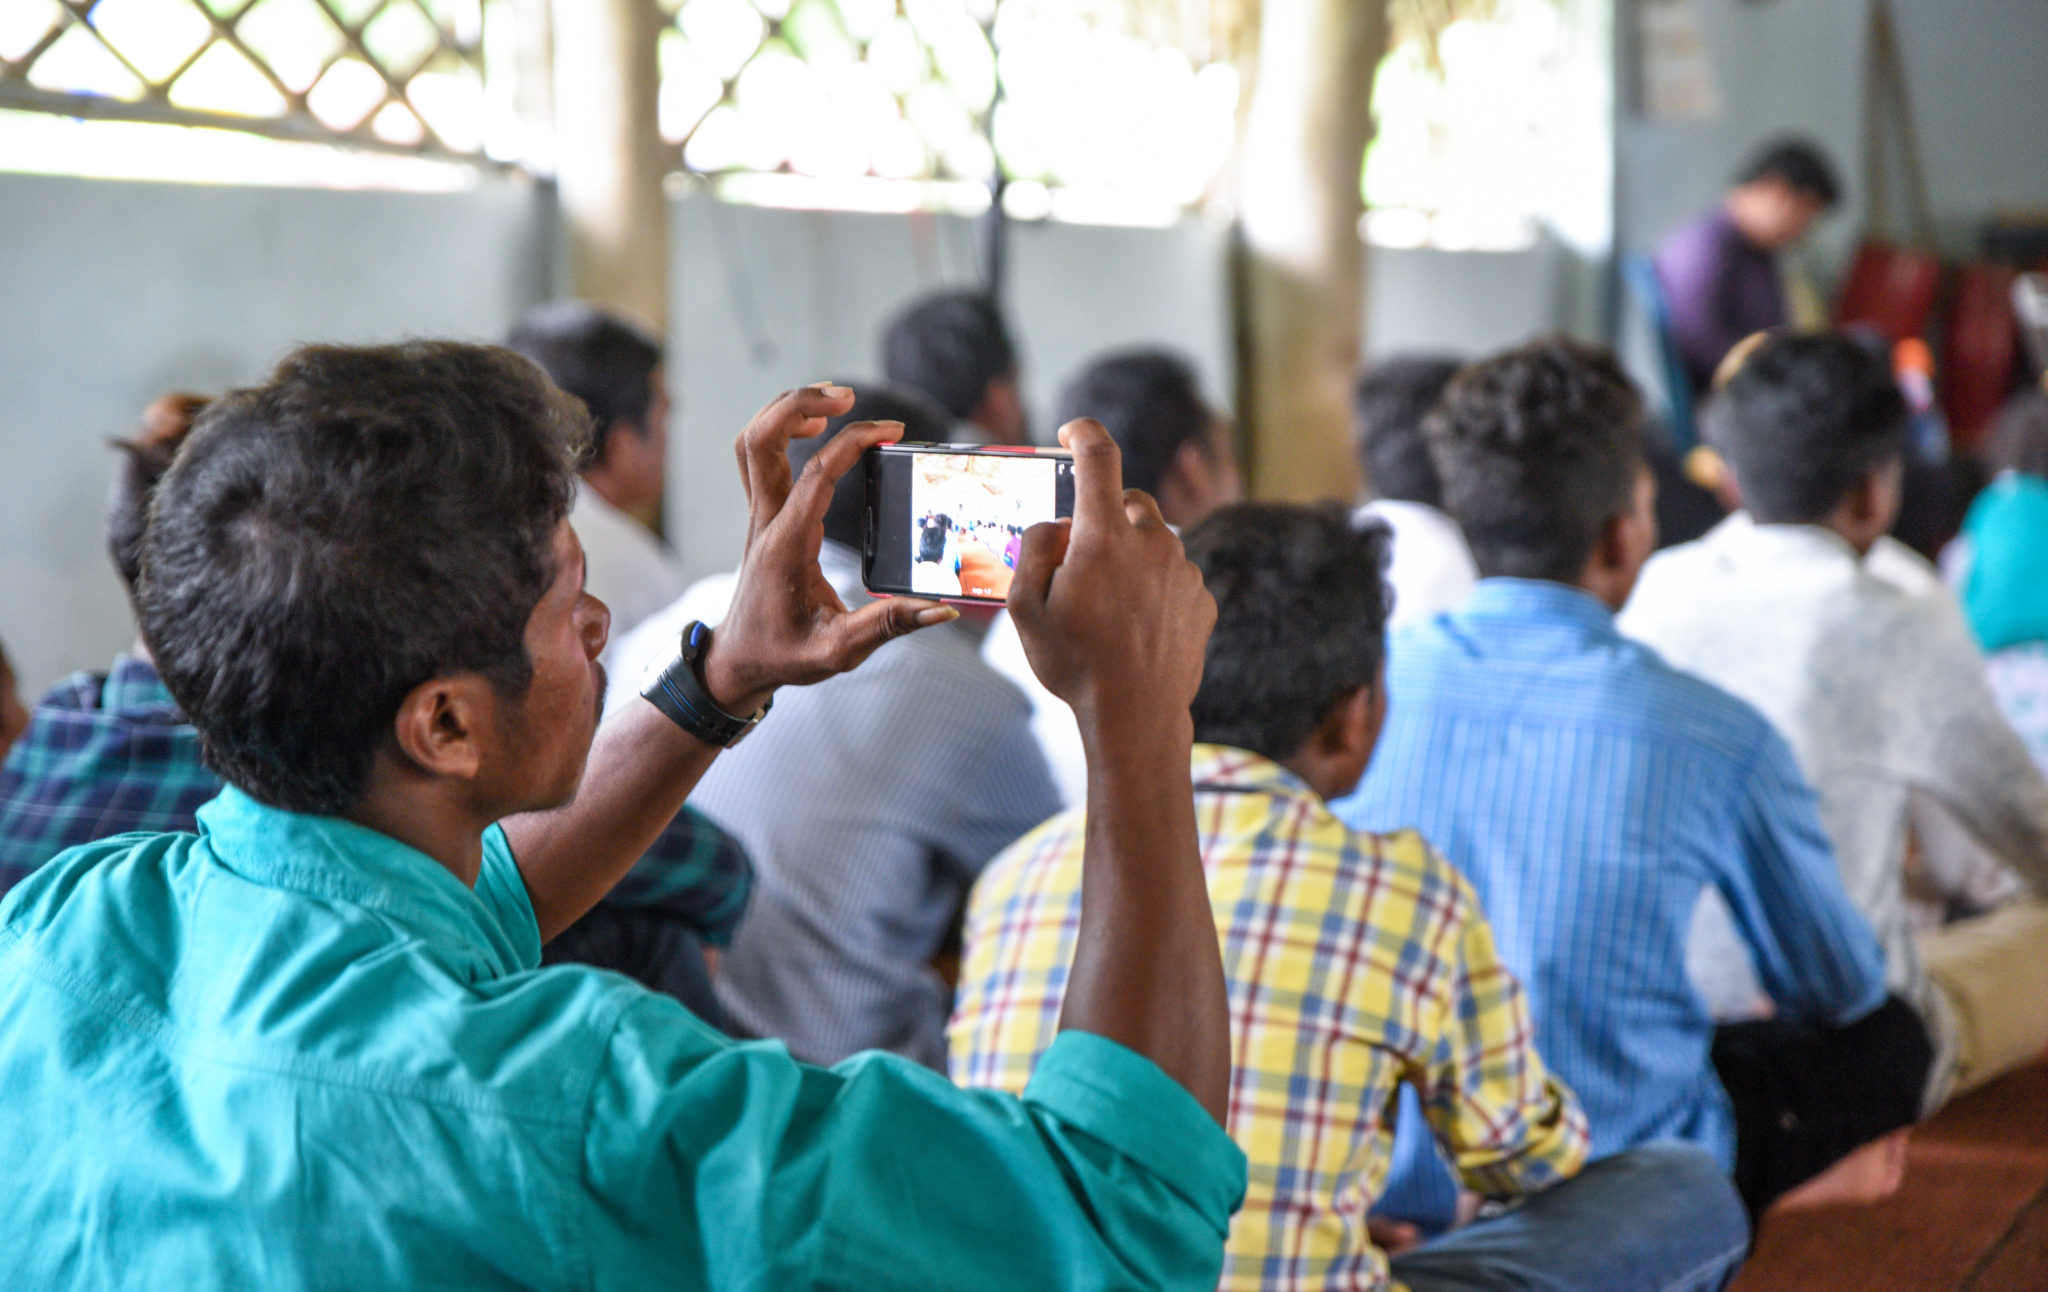 Indian man holds up smartphone to take photo during audio Bible app presentation